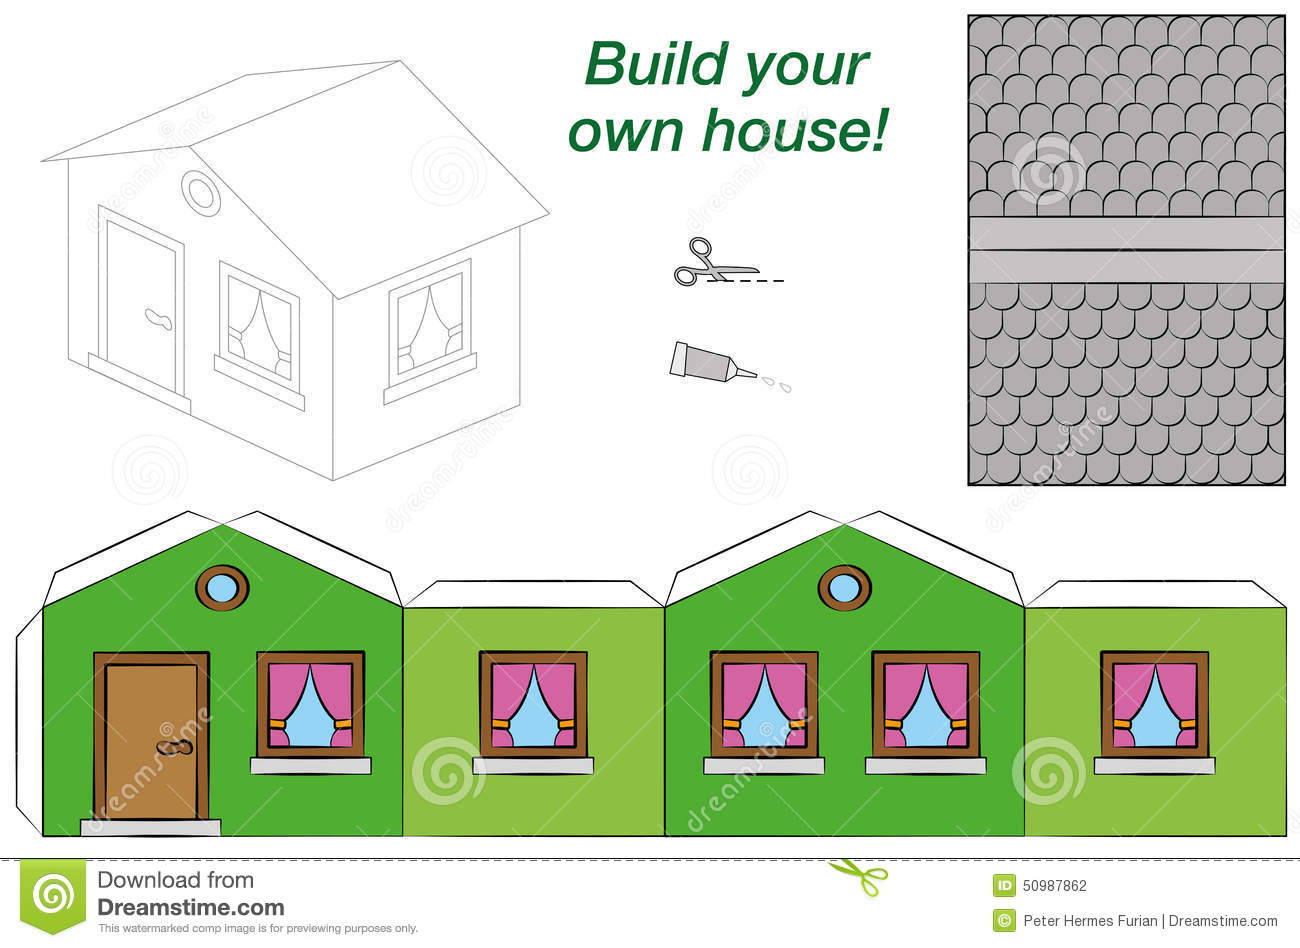 Paper model house template green stock vector image for Build house online 3d free